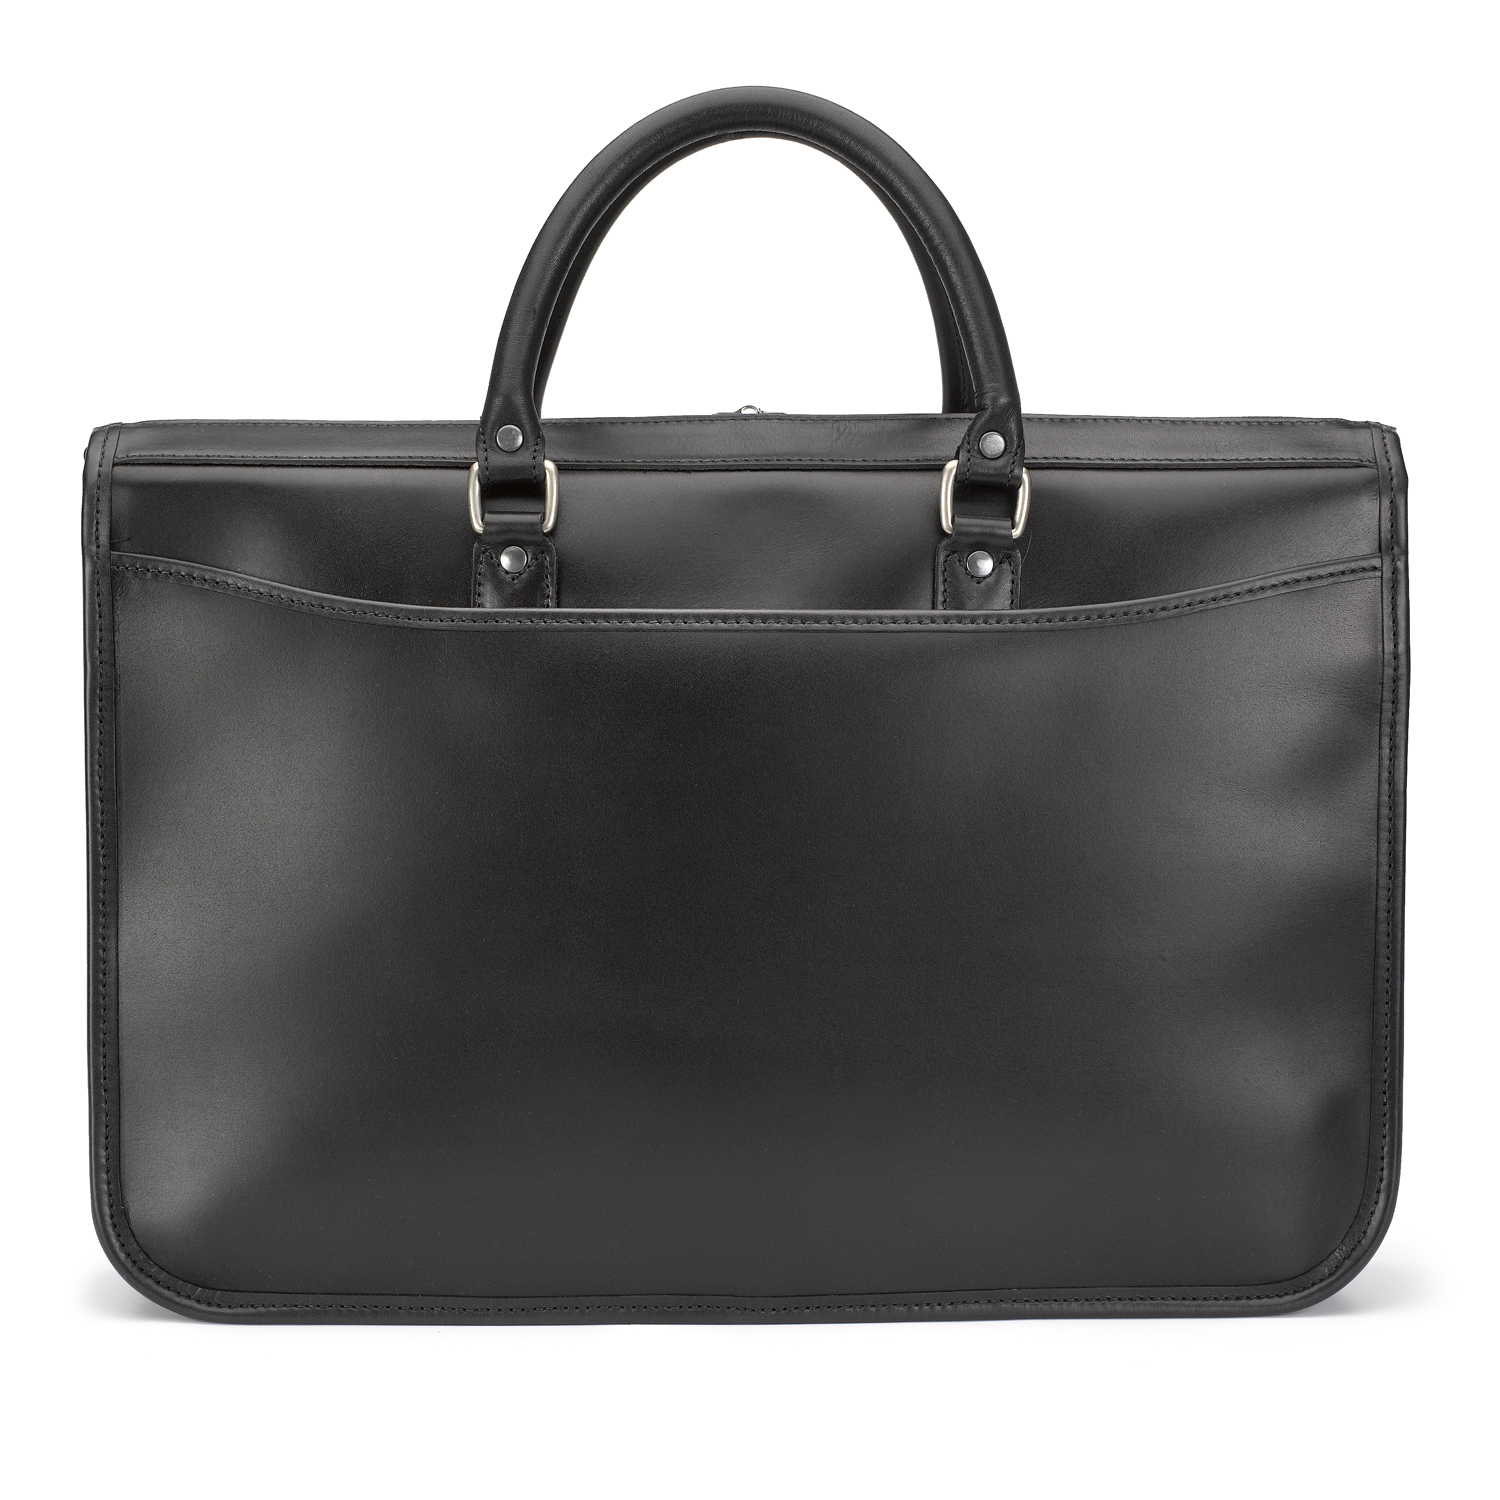 Tusting Marston Leather Briefcase, Made in England